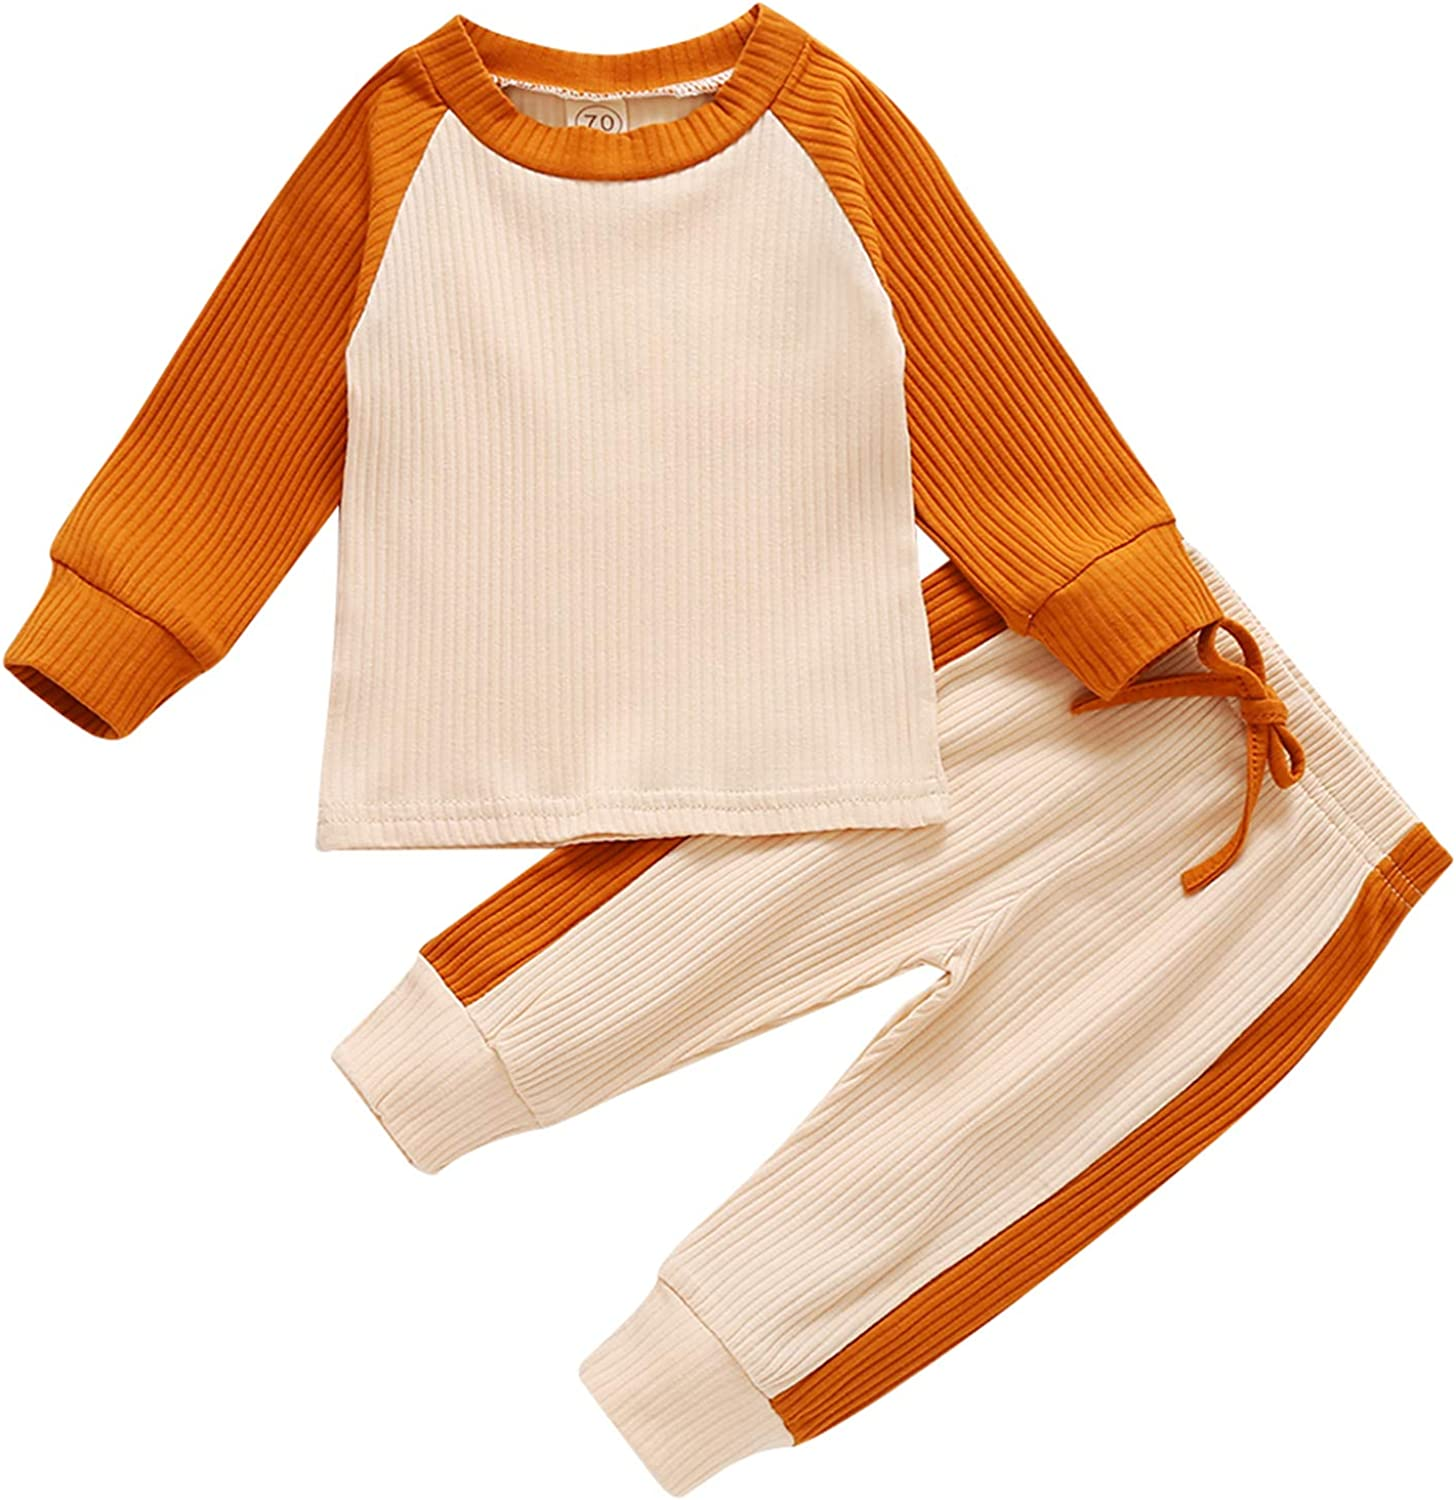 Baby Girls Boys 2 Pieces Pajamas Set Cotton Knitted Long Sleeve Tops & Pants